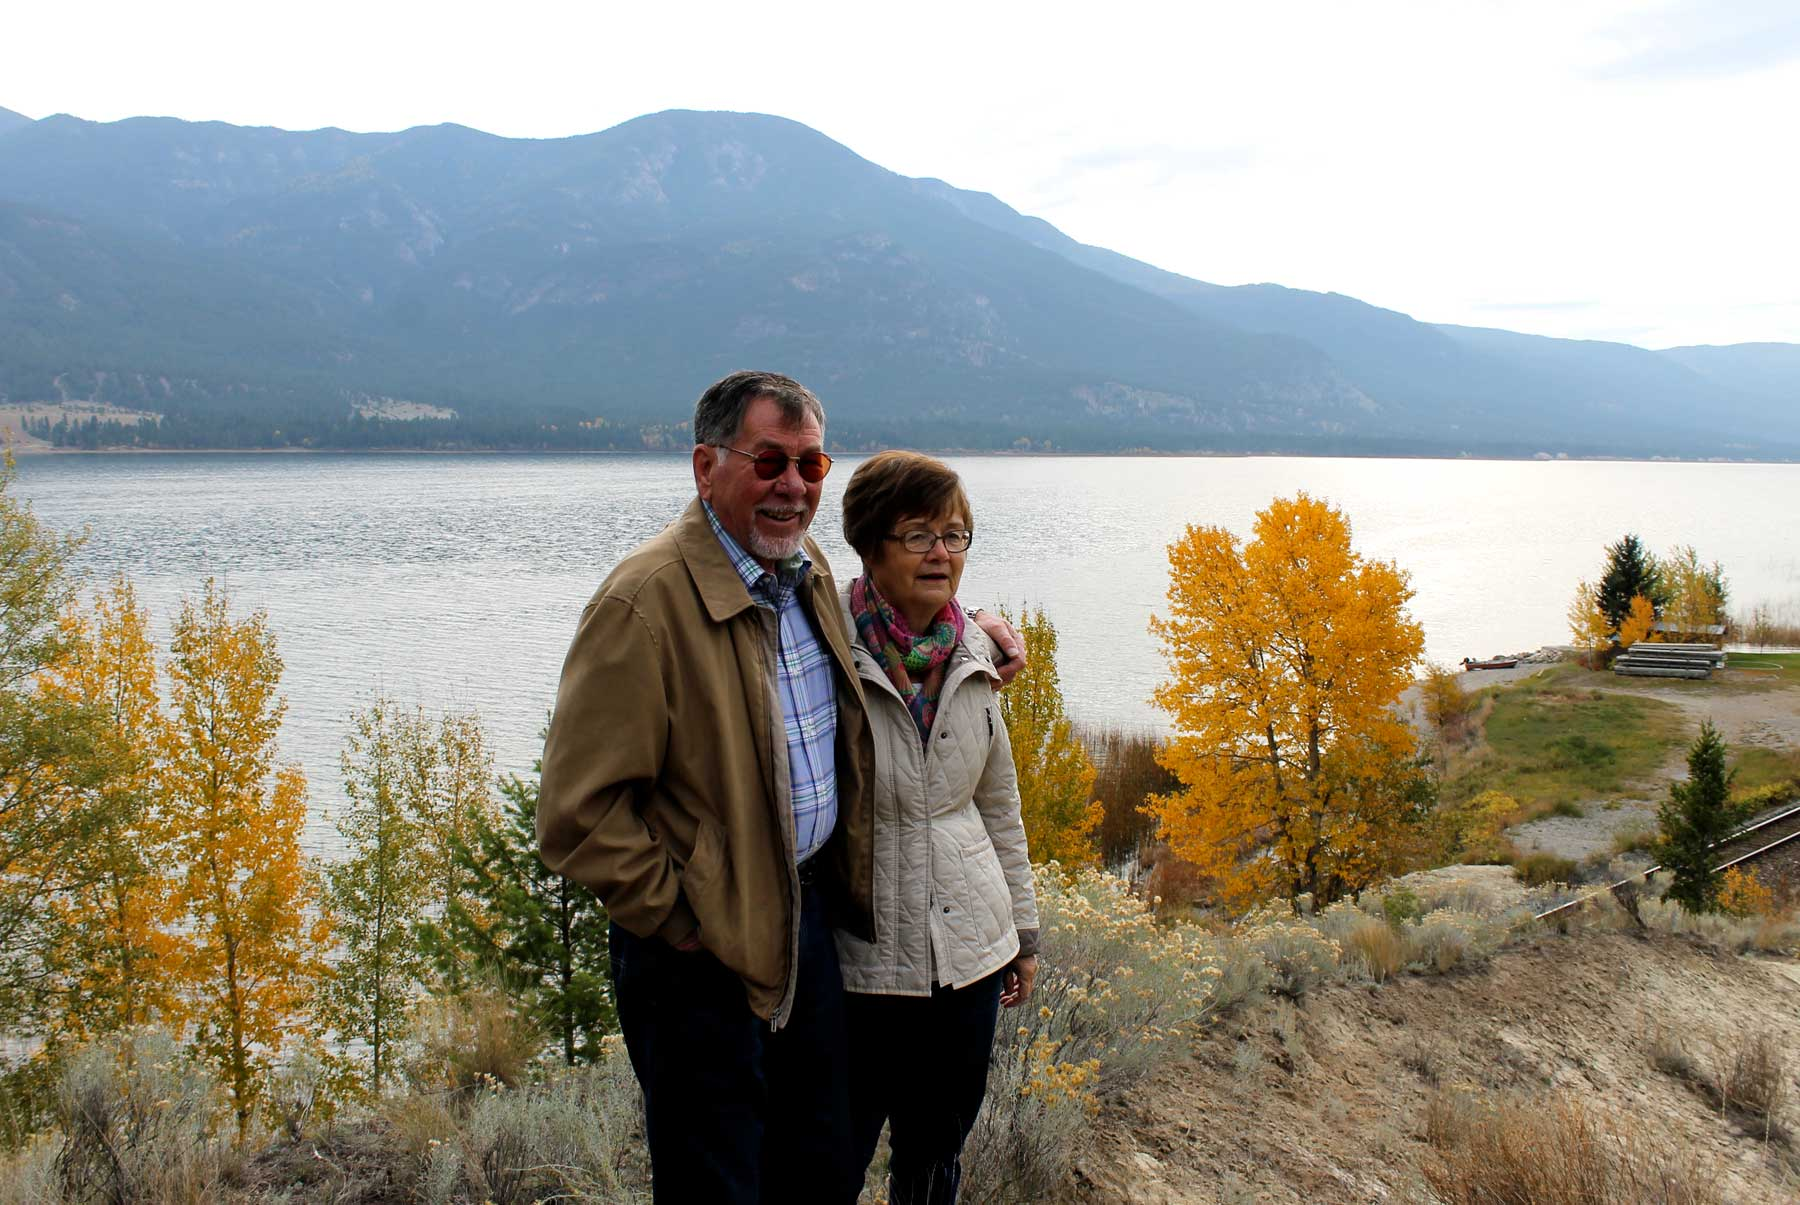 Rocky Mountain Lake views with Wolfgang and Margret